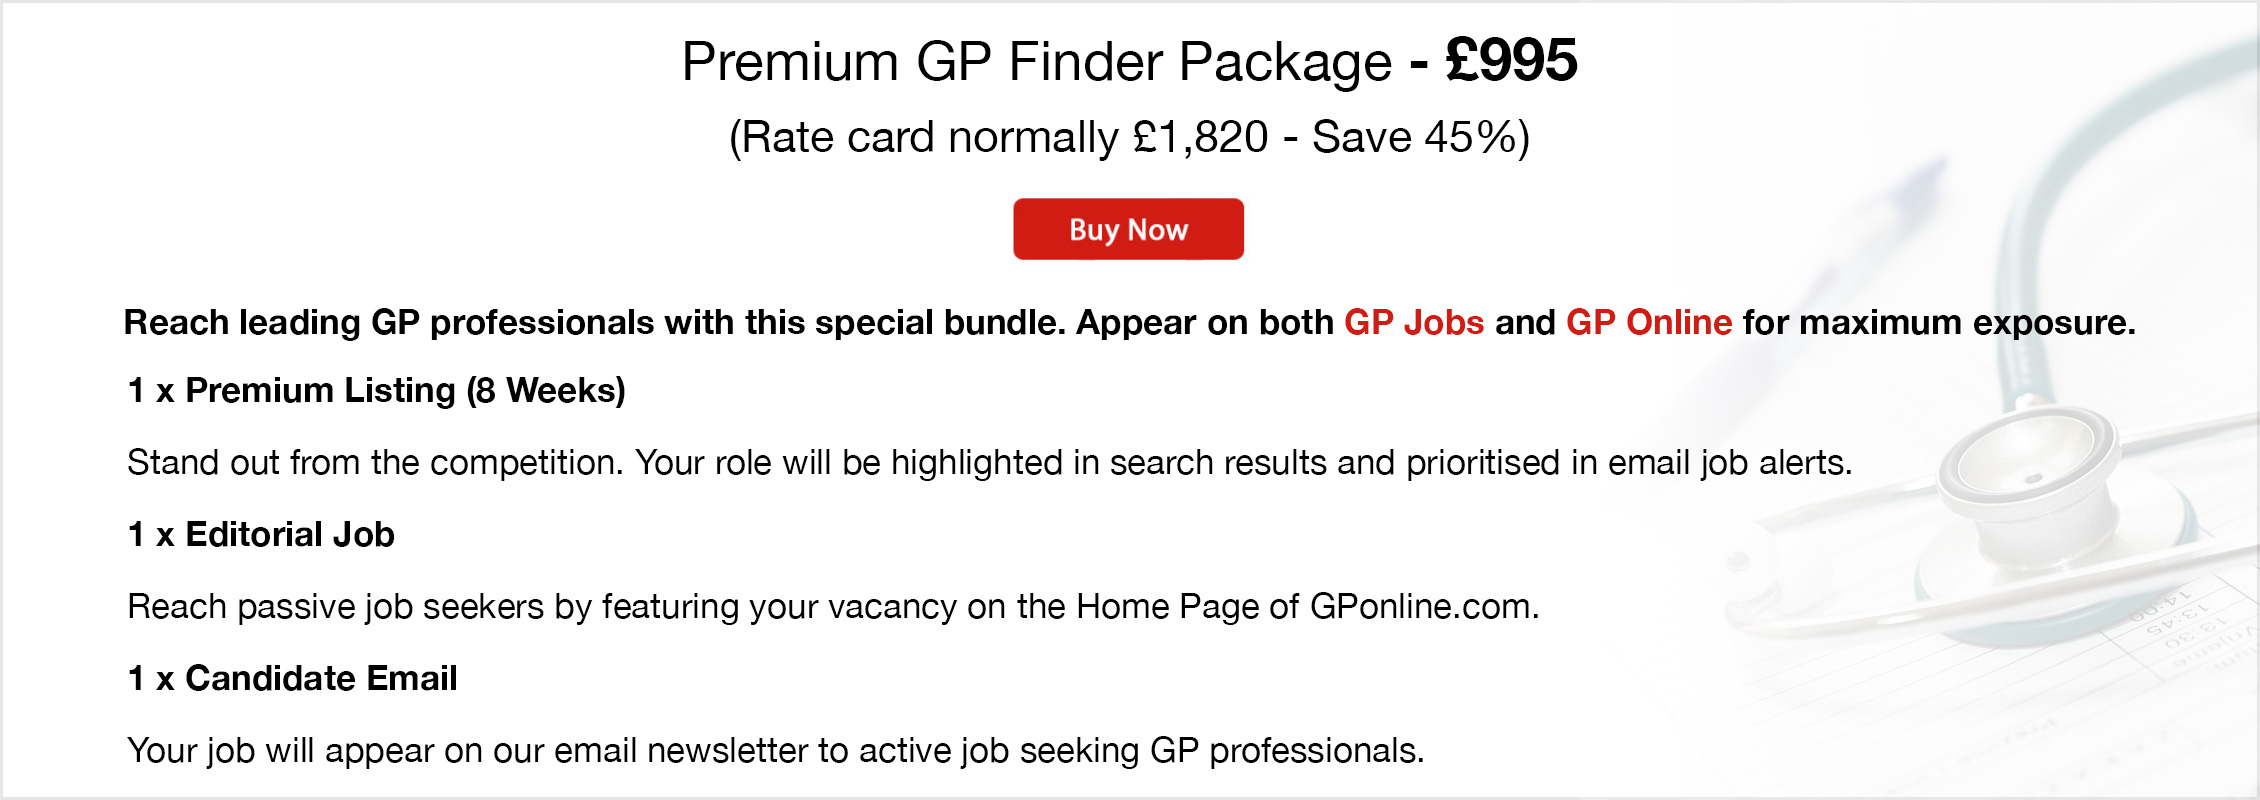 Premium GP Finder Package - £995. (Rate card normally £1,820 - Save 45%). Buy Now. Reach leading GP professionals with this special bundle. Appear on both GP Jobs and GP Online for maximum exposure. 1 x Premium Listing (8 Weeks). Stand out from the competition. Your role will be highlighted in search results and prioritised in email job alerts. 1 x Editorial Job. Reach passive job seekers by featuring your vacancy on the Home Page of GPonline.com. 1 x Candidate Email. Your job will appear on our email newsletter to active job seeking GP professionals.